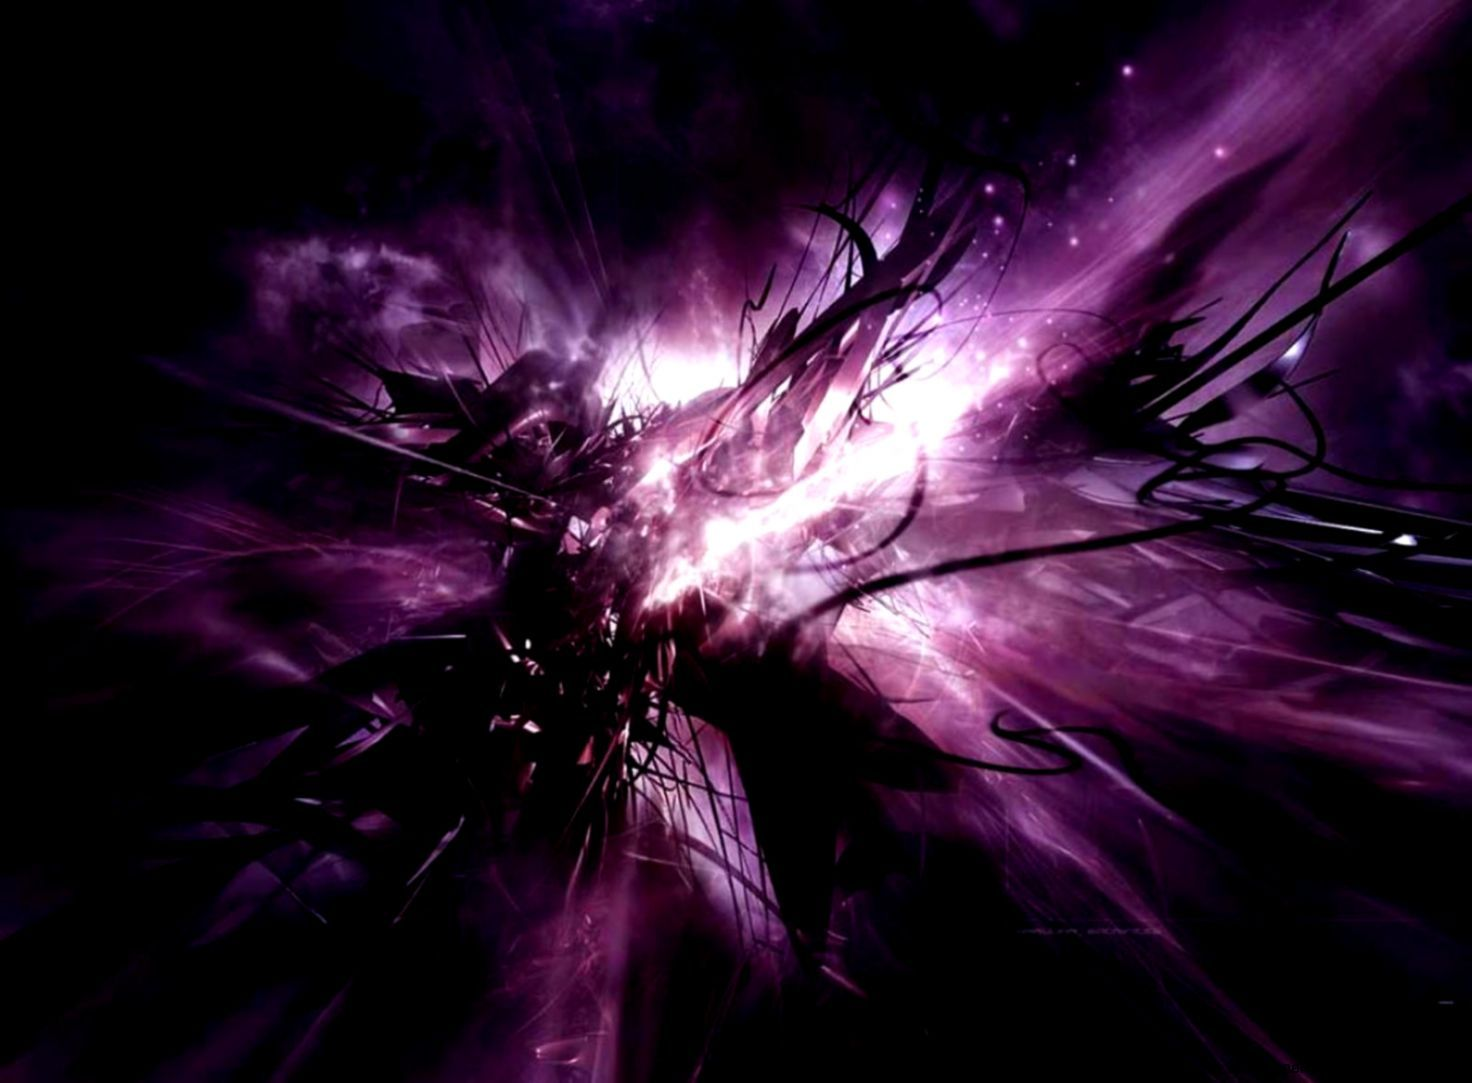 1472x1083 Black and Purple Abstract Wallpaper Picture 1383 - HD Wallpaper Site